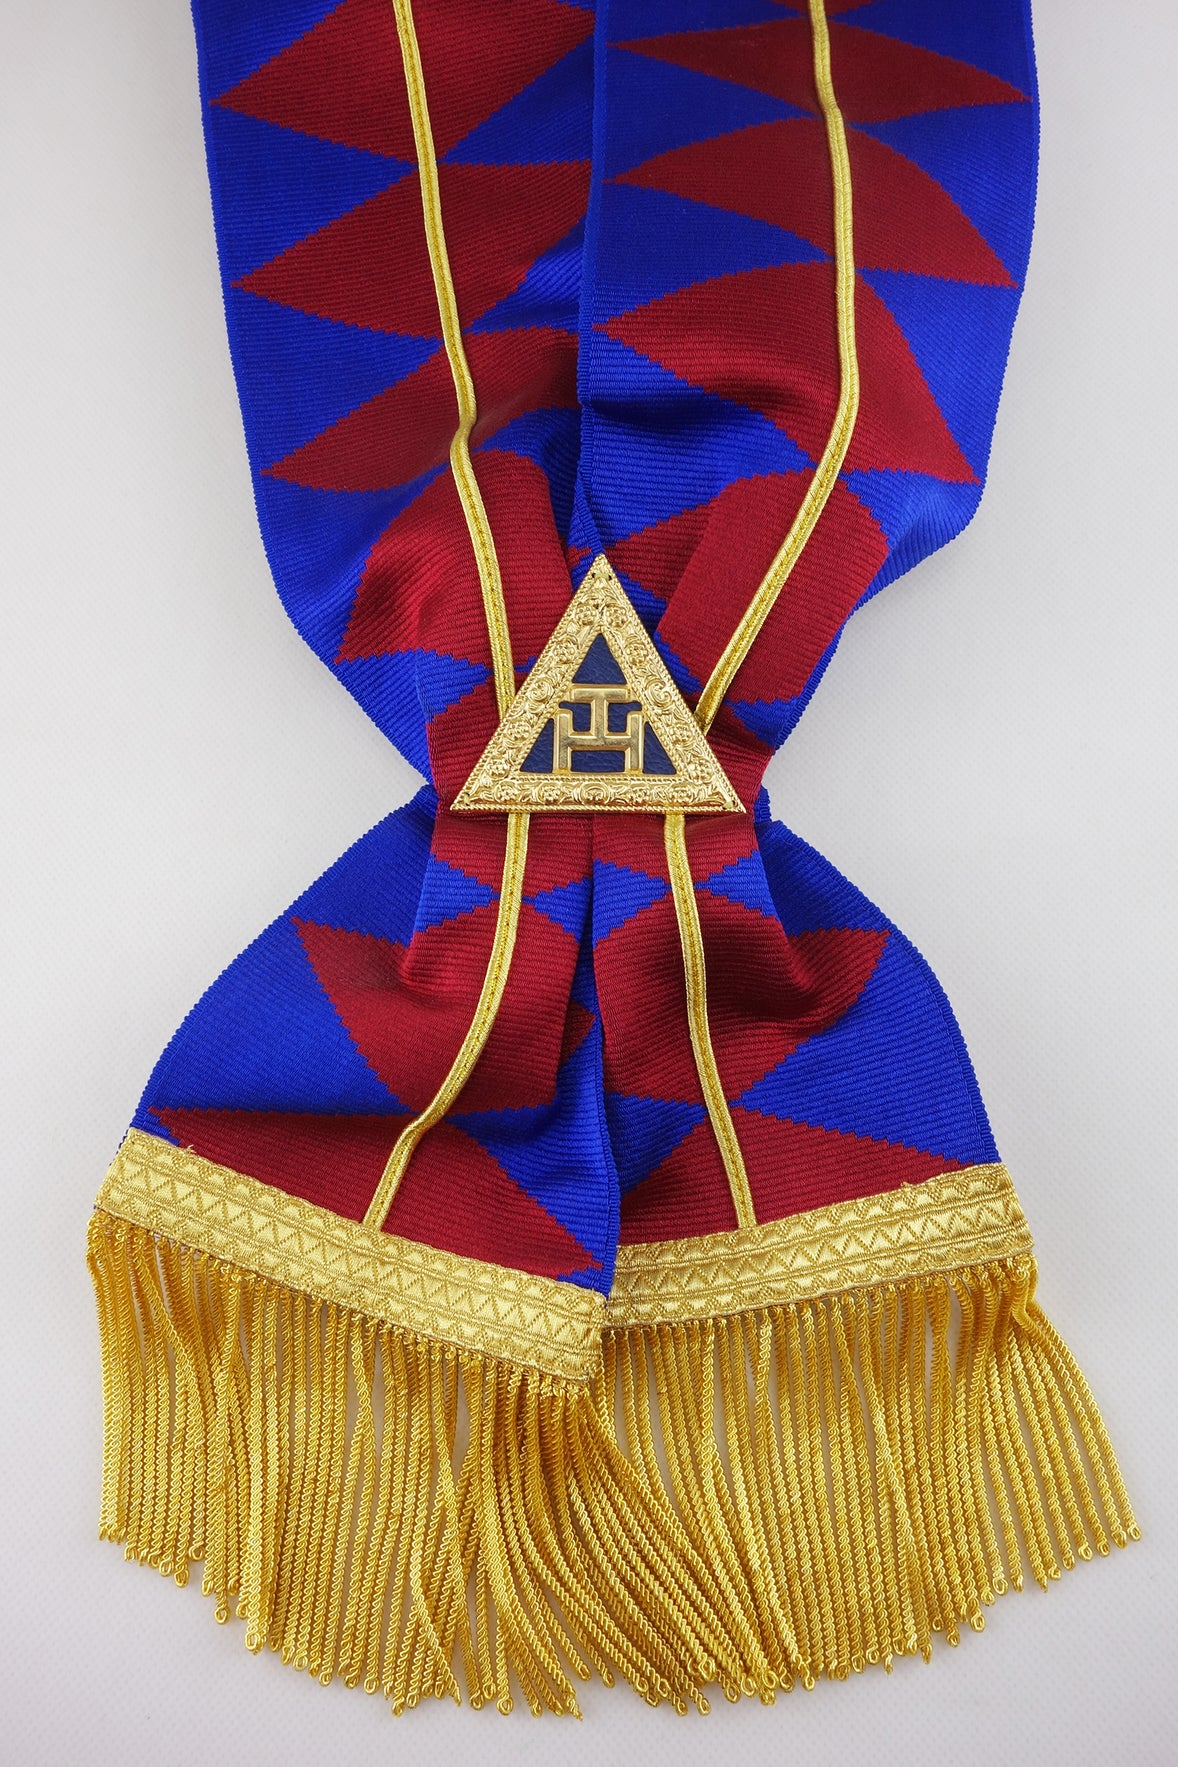 Grand Chapter Officer Sash, Victoria